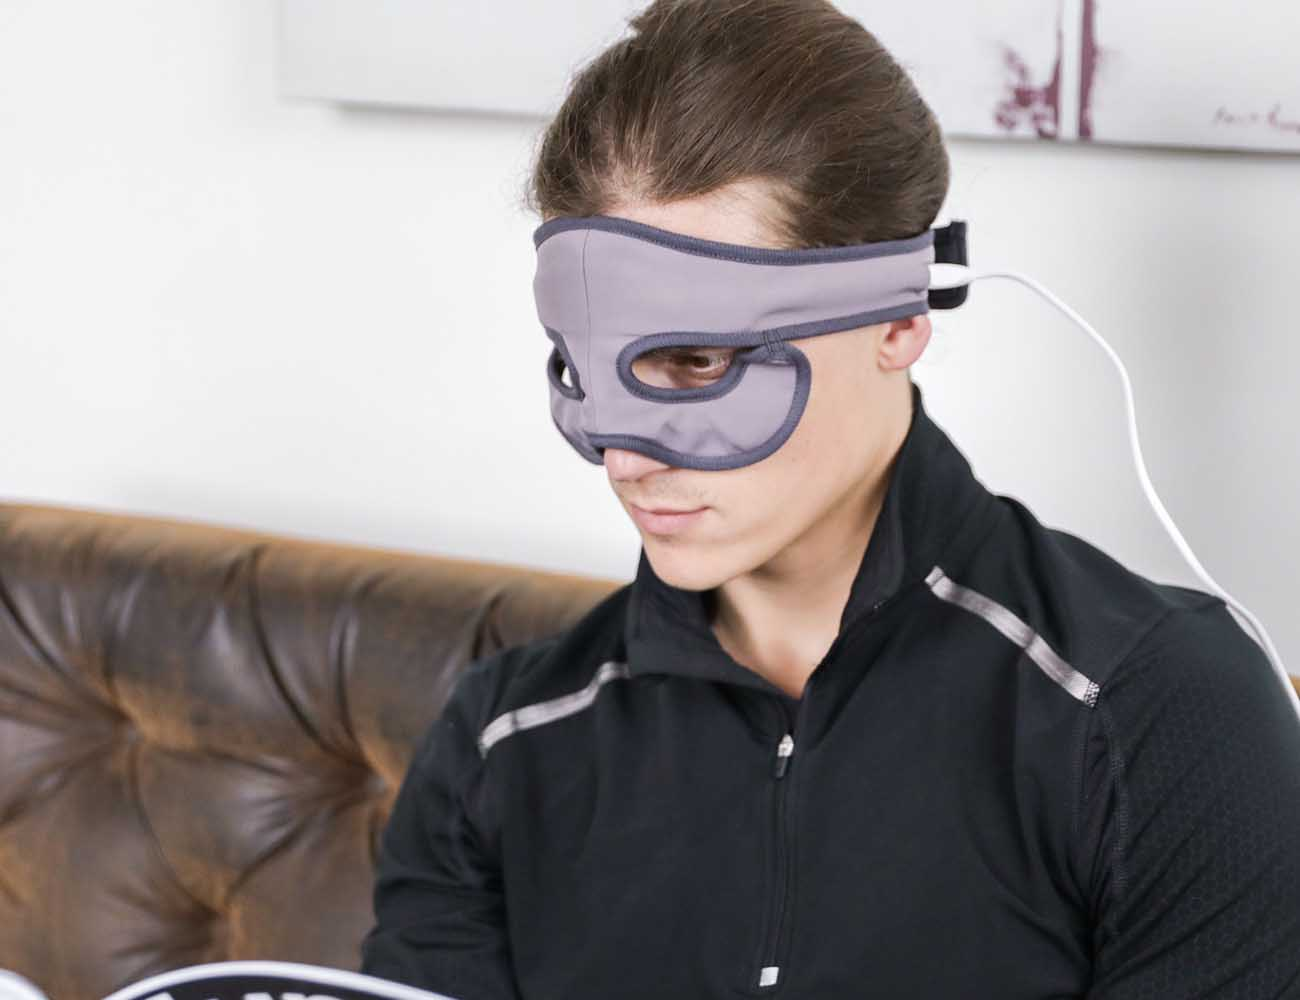 Sniff Relief Self-Heating Mask